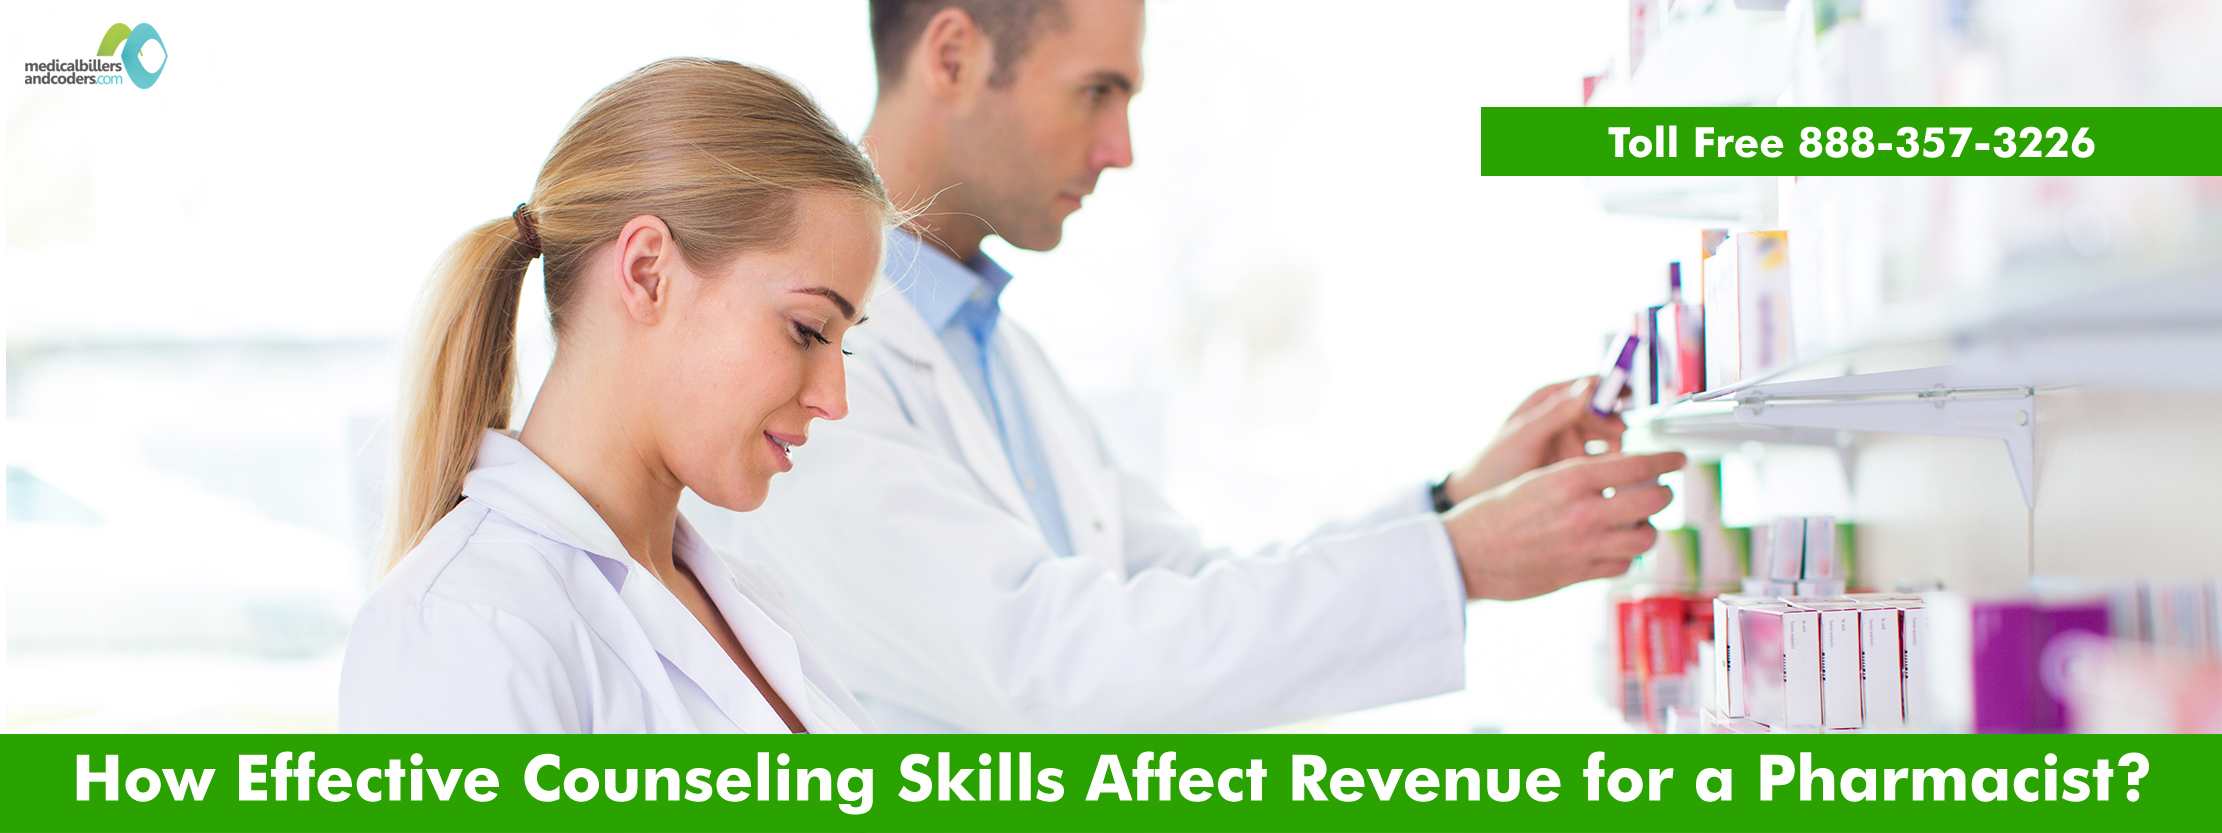 How Effective Counseling Skills Affect Revenue For A Pharmacist?